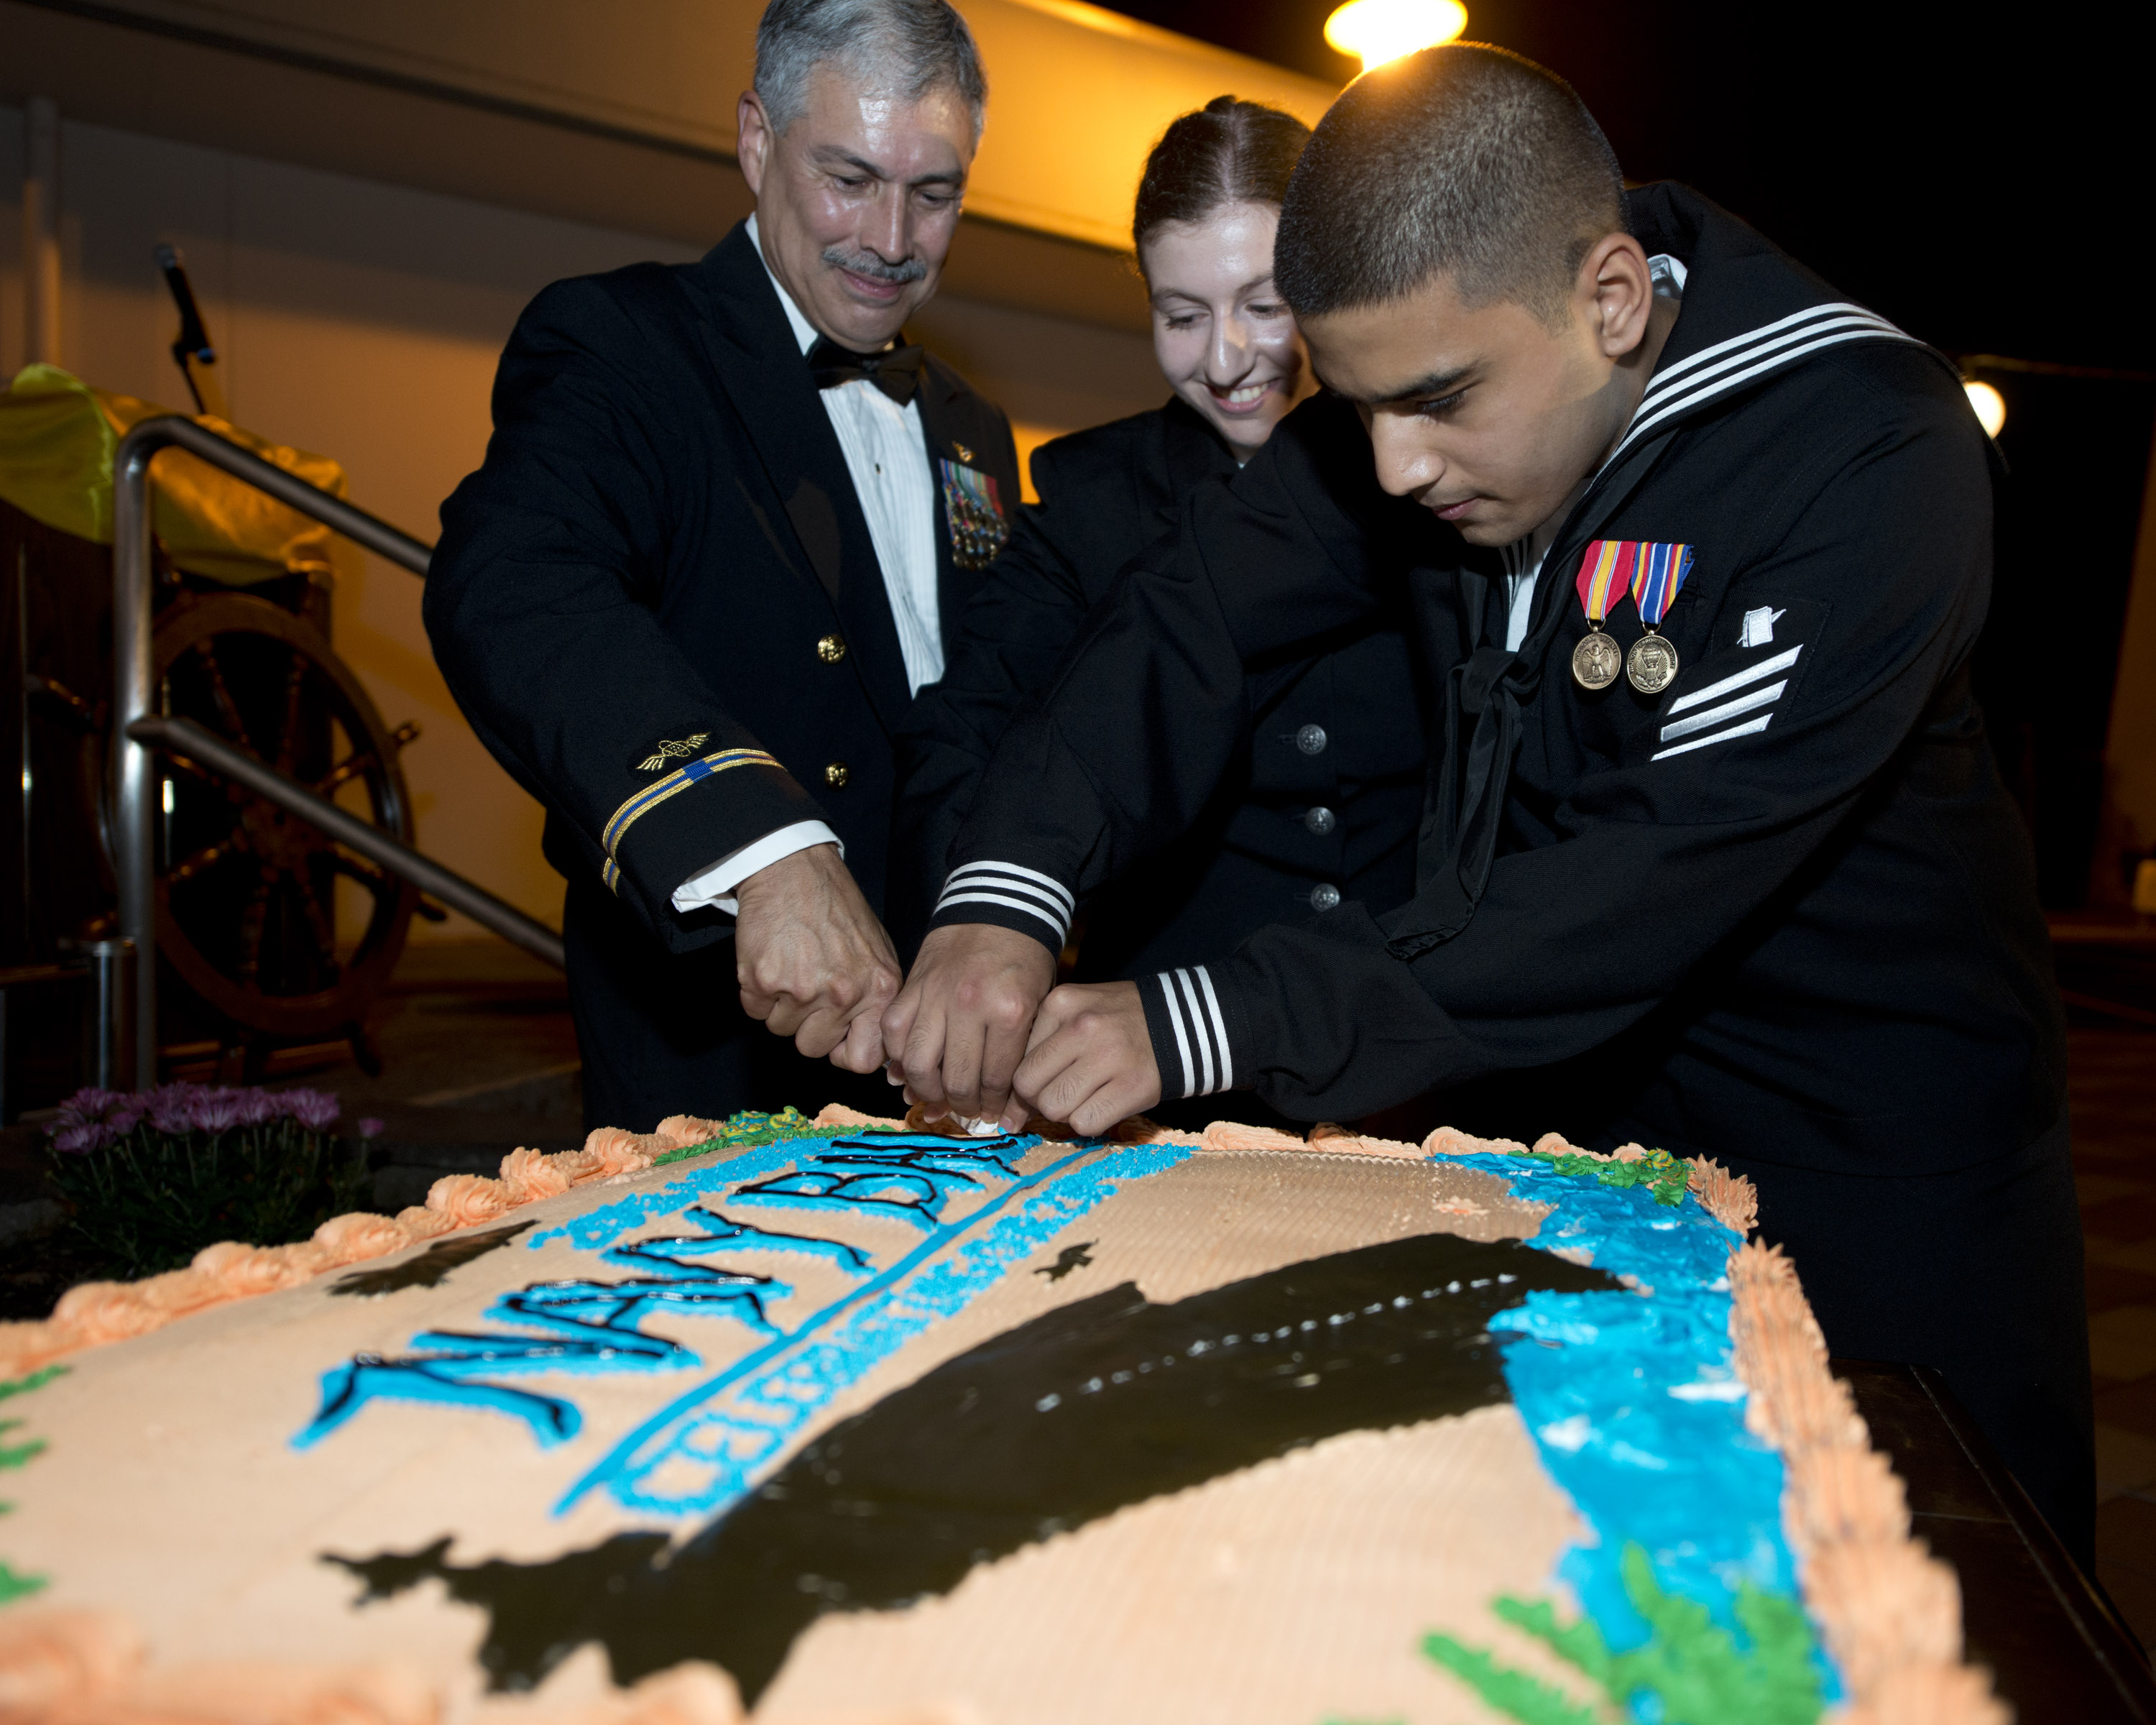 US Navy Turns 239 Pass the Cake USNI News